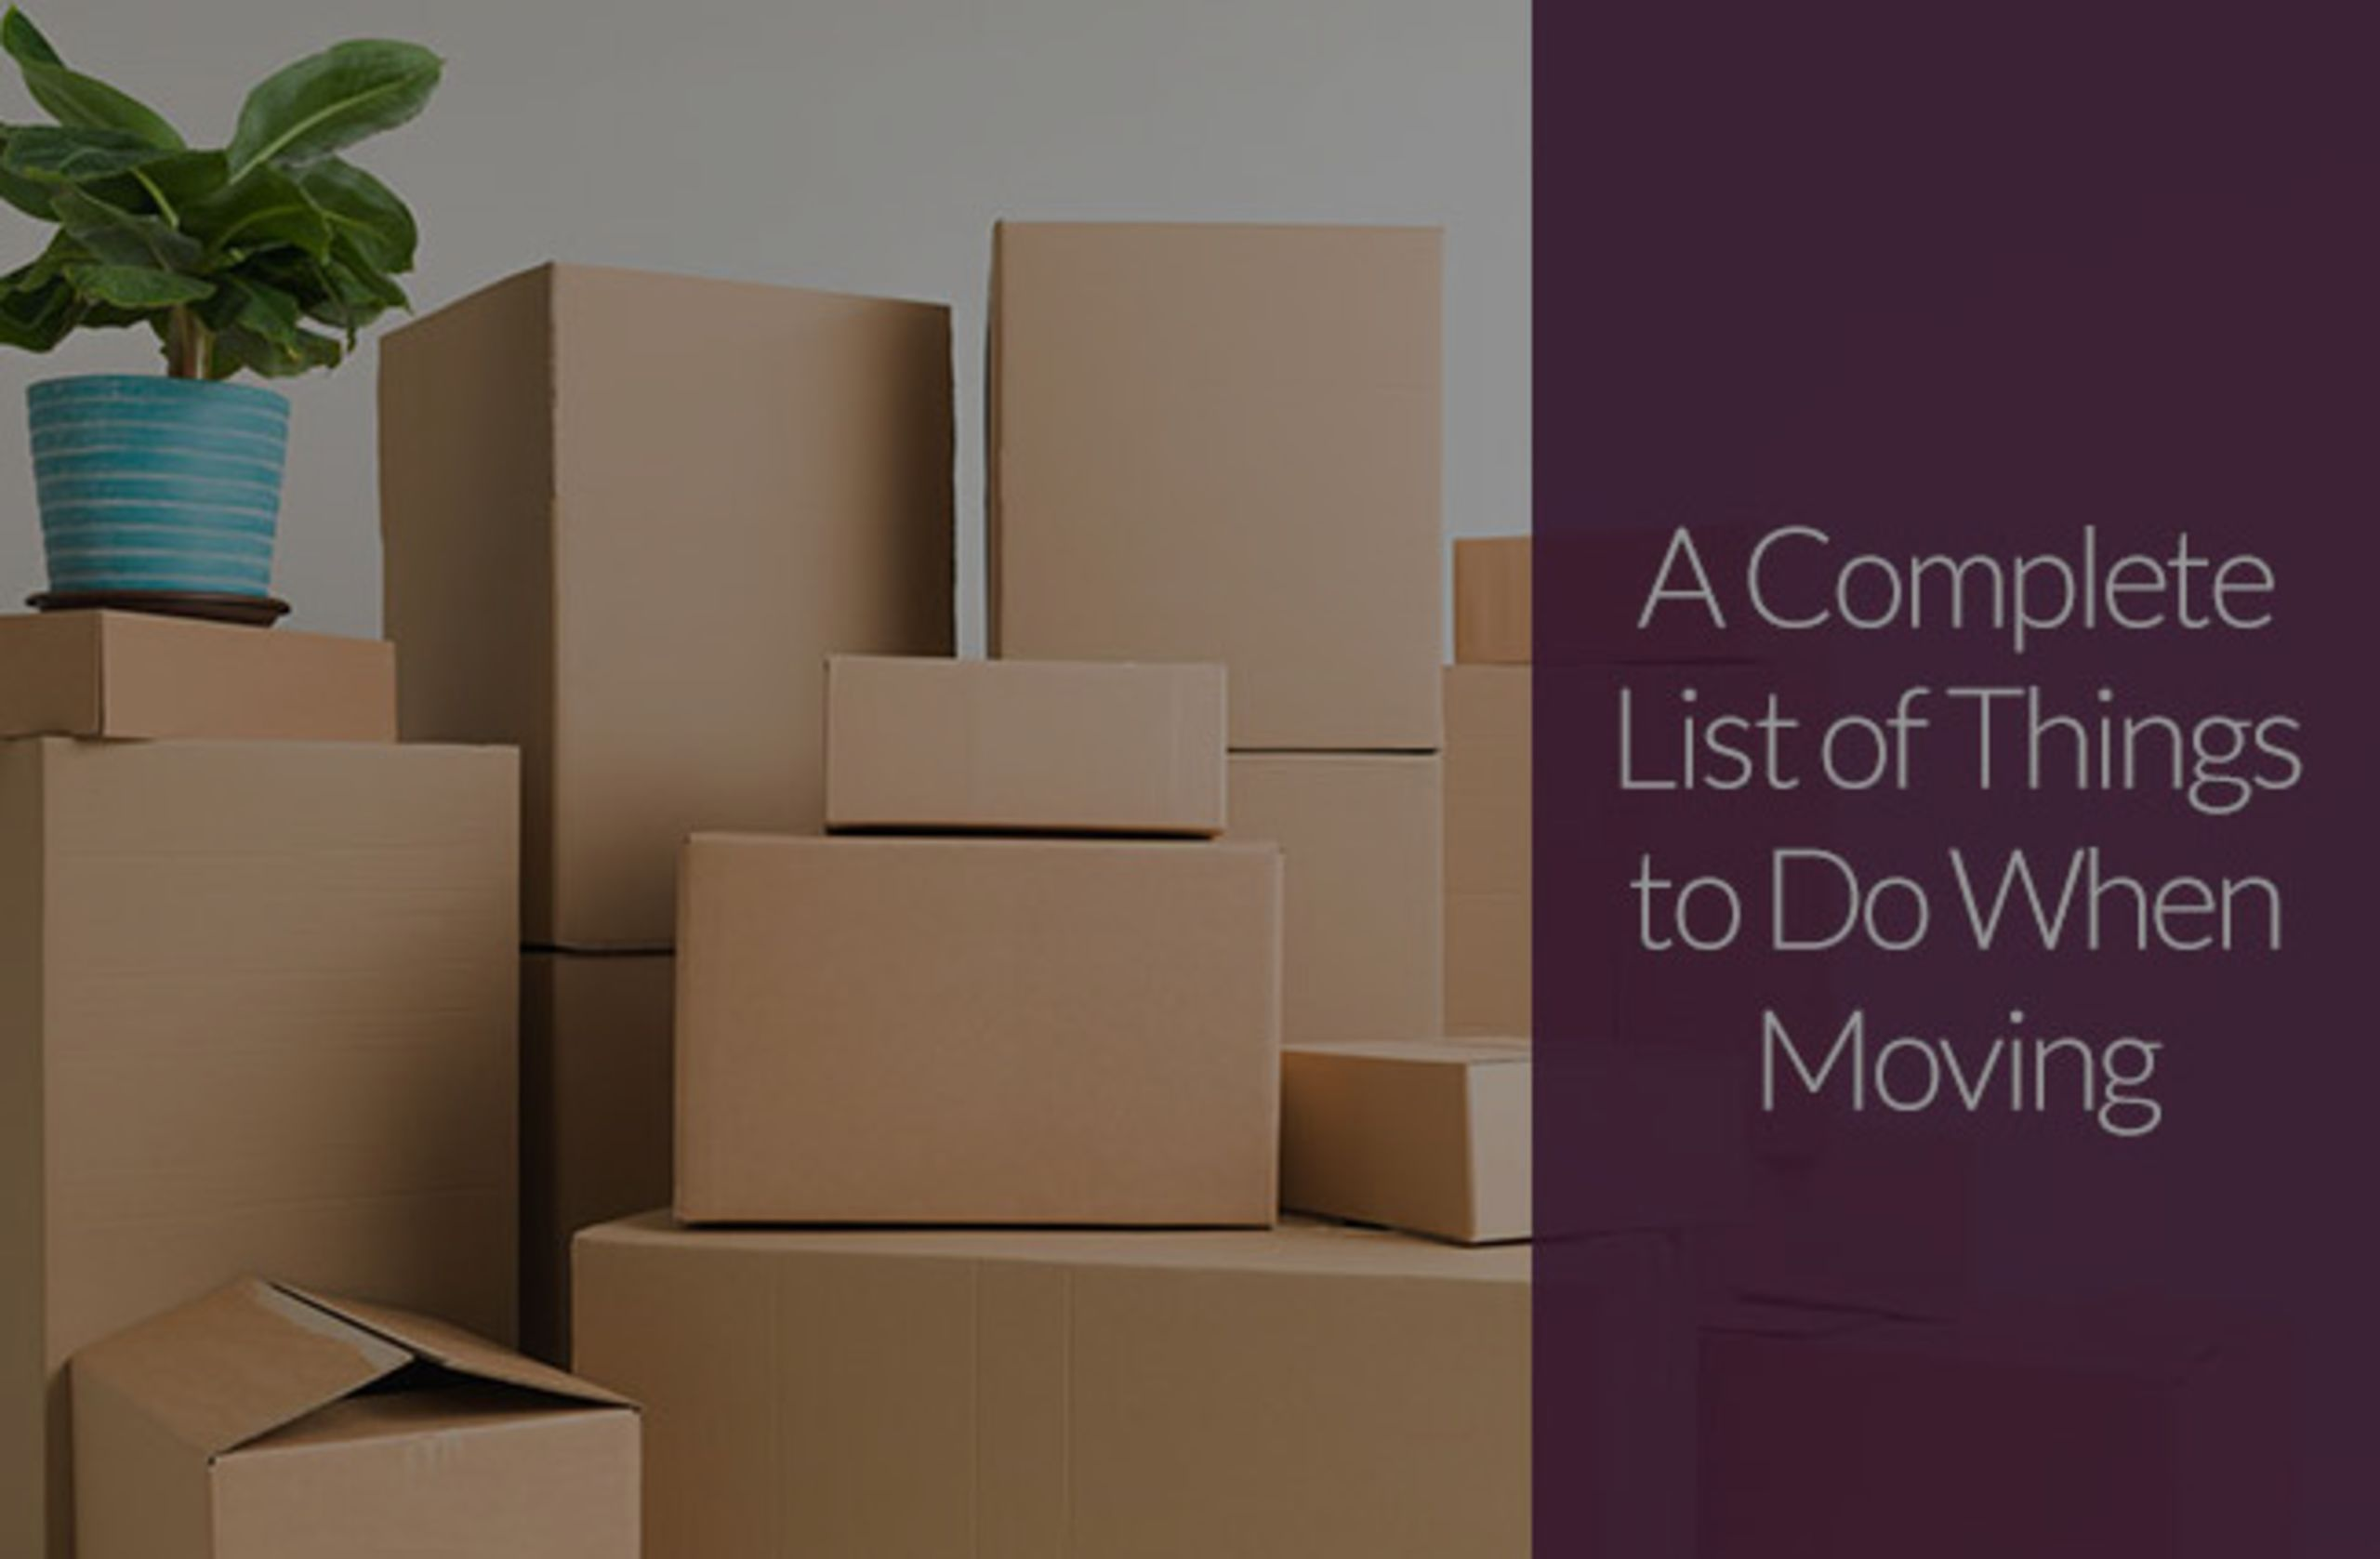 A Complete List of Things to Do When Moving